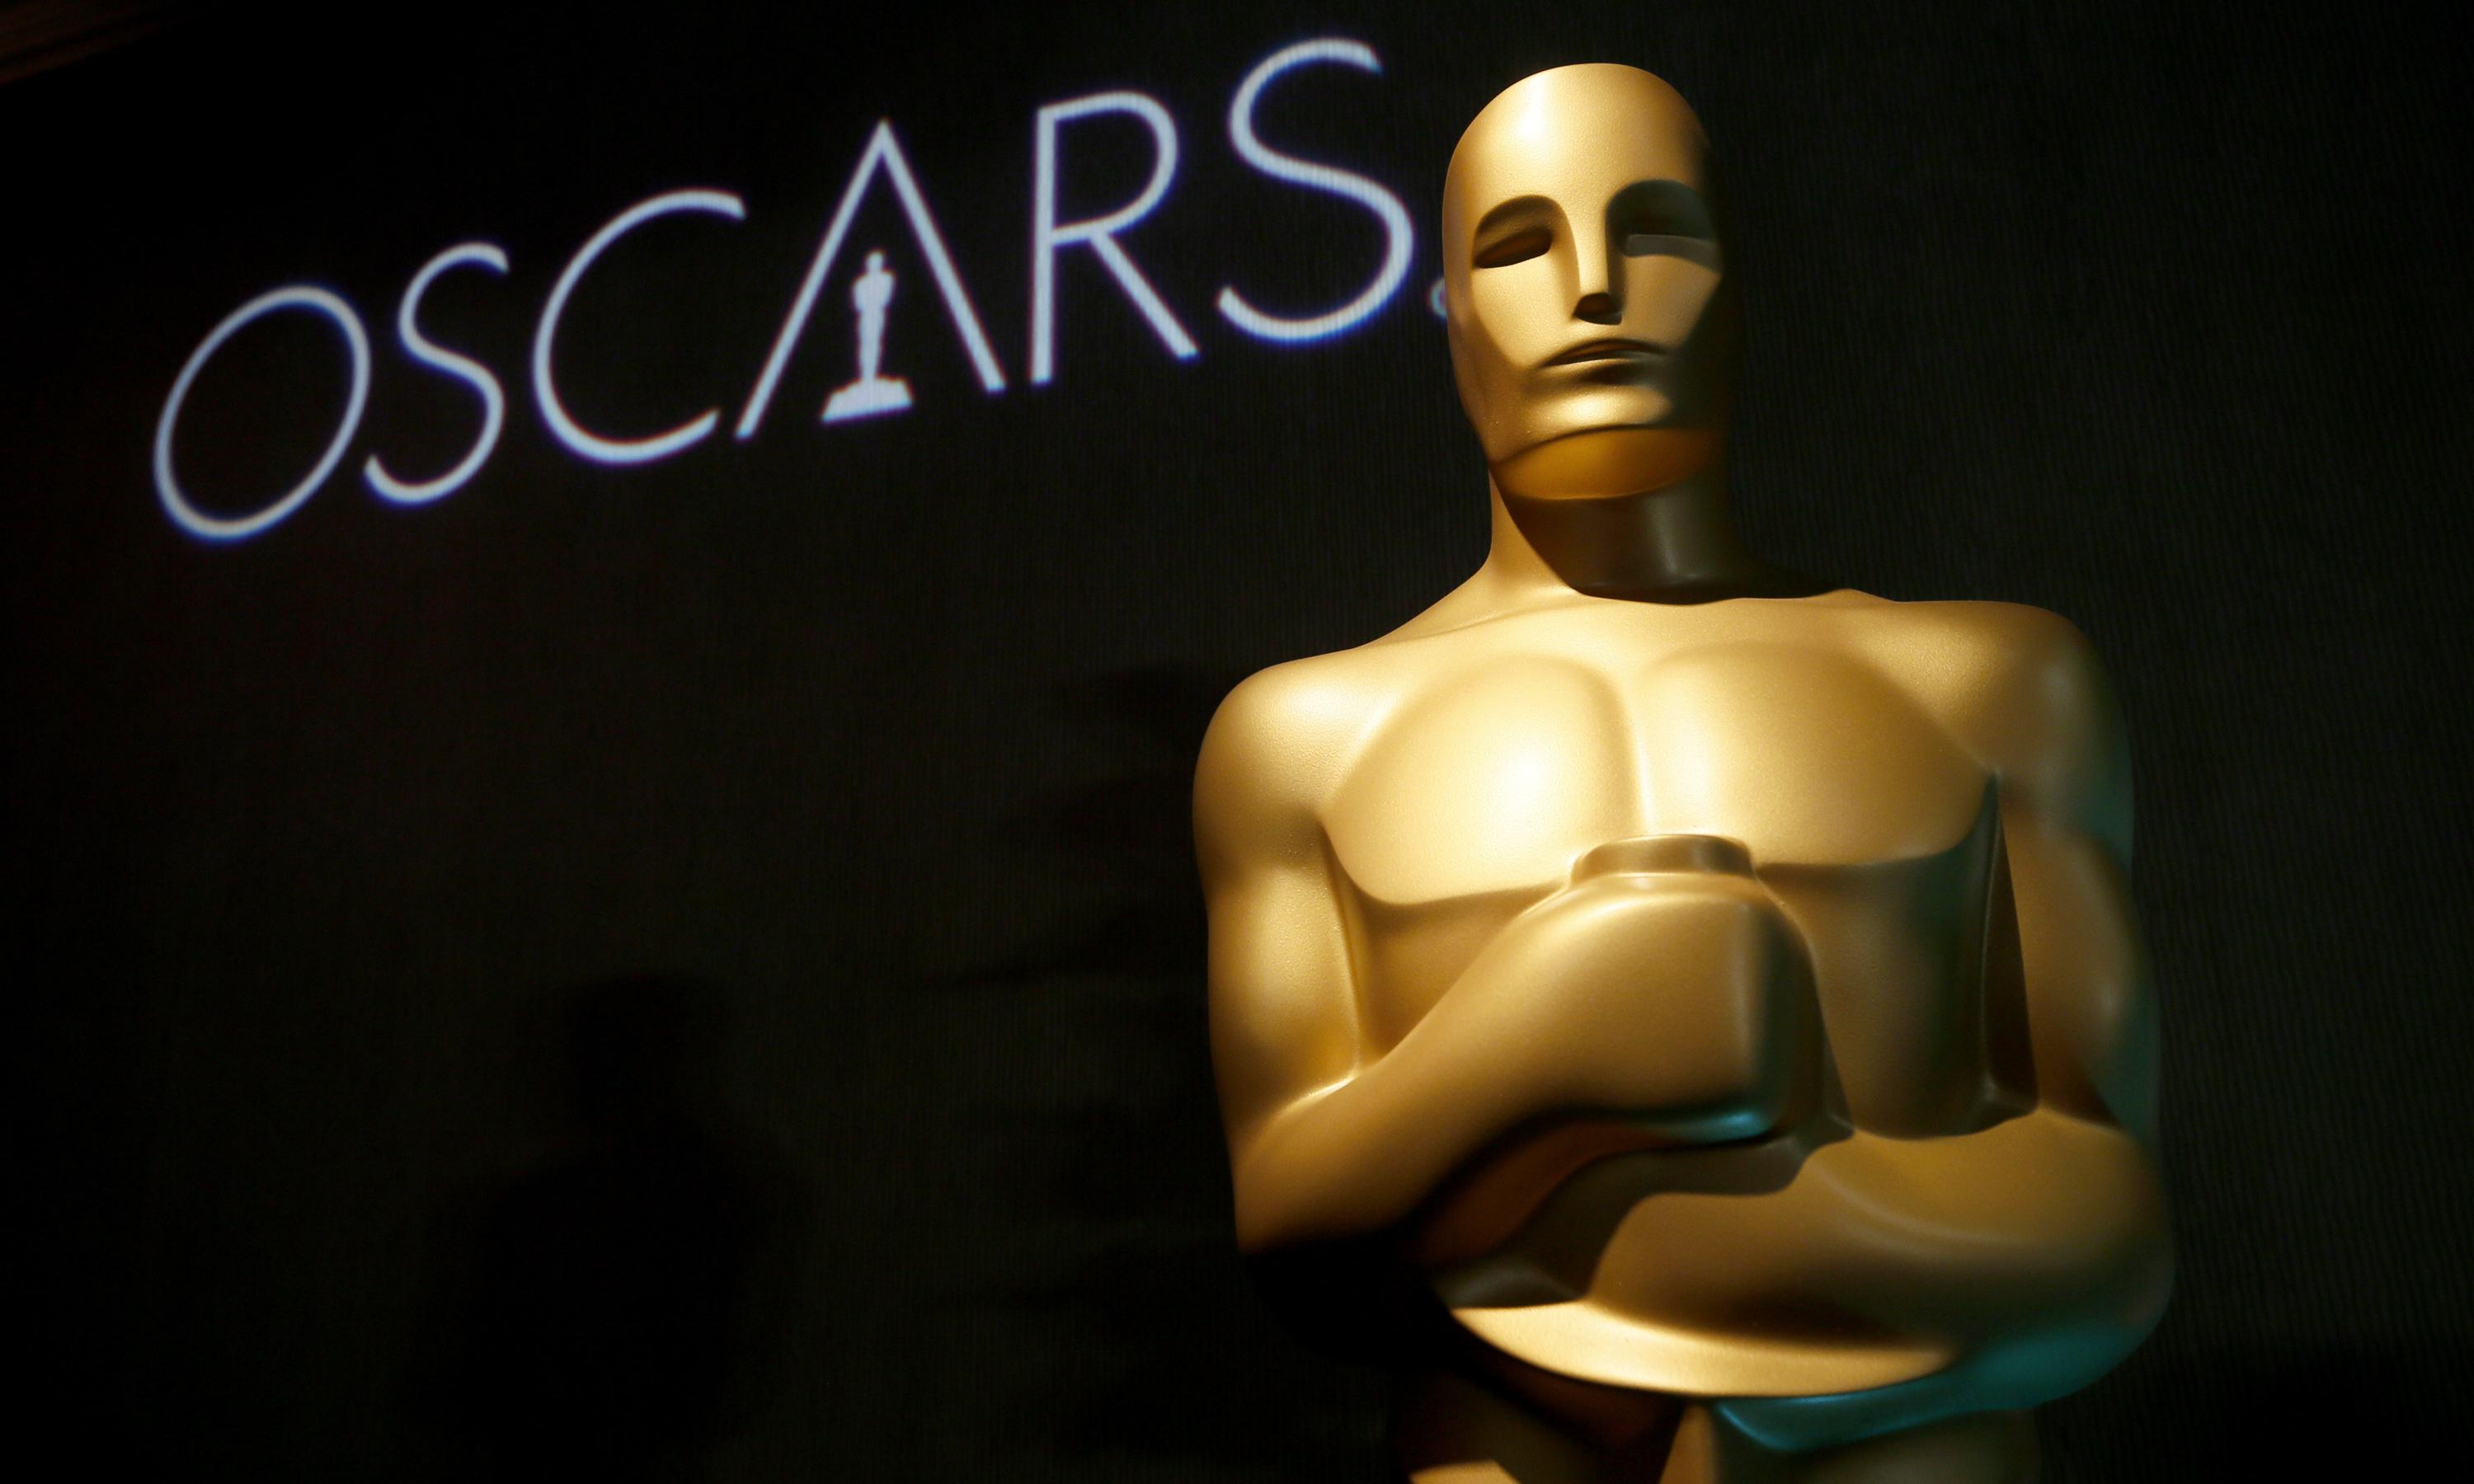 BLTs and hypocrisy whistles: imagining 2019's Oscars goodie bag